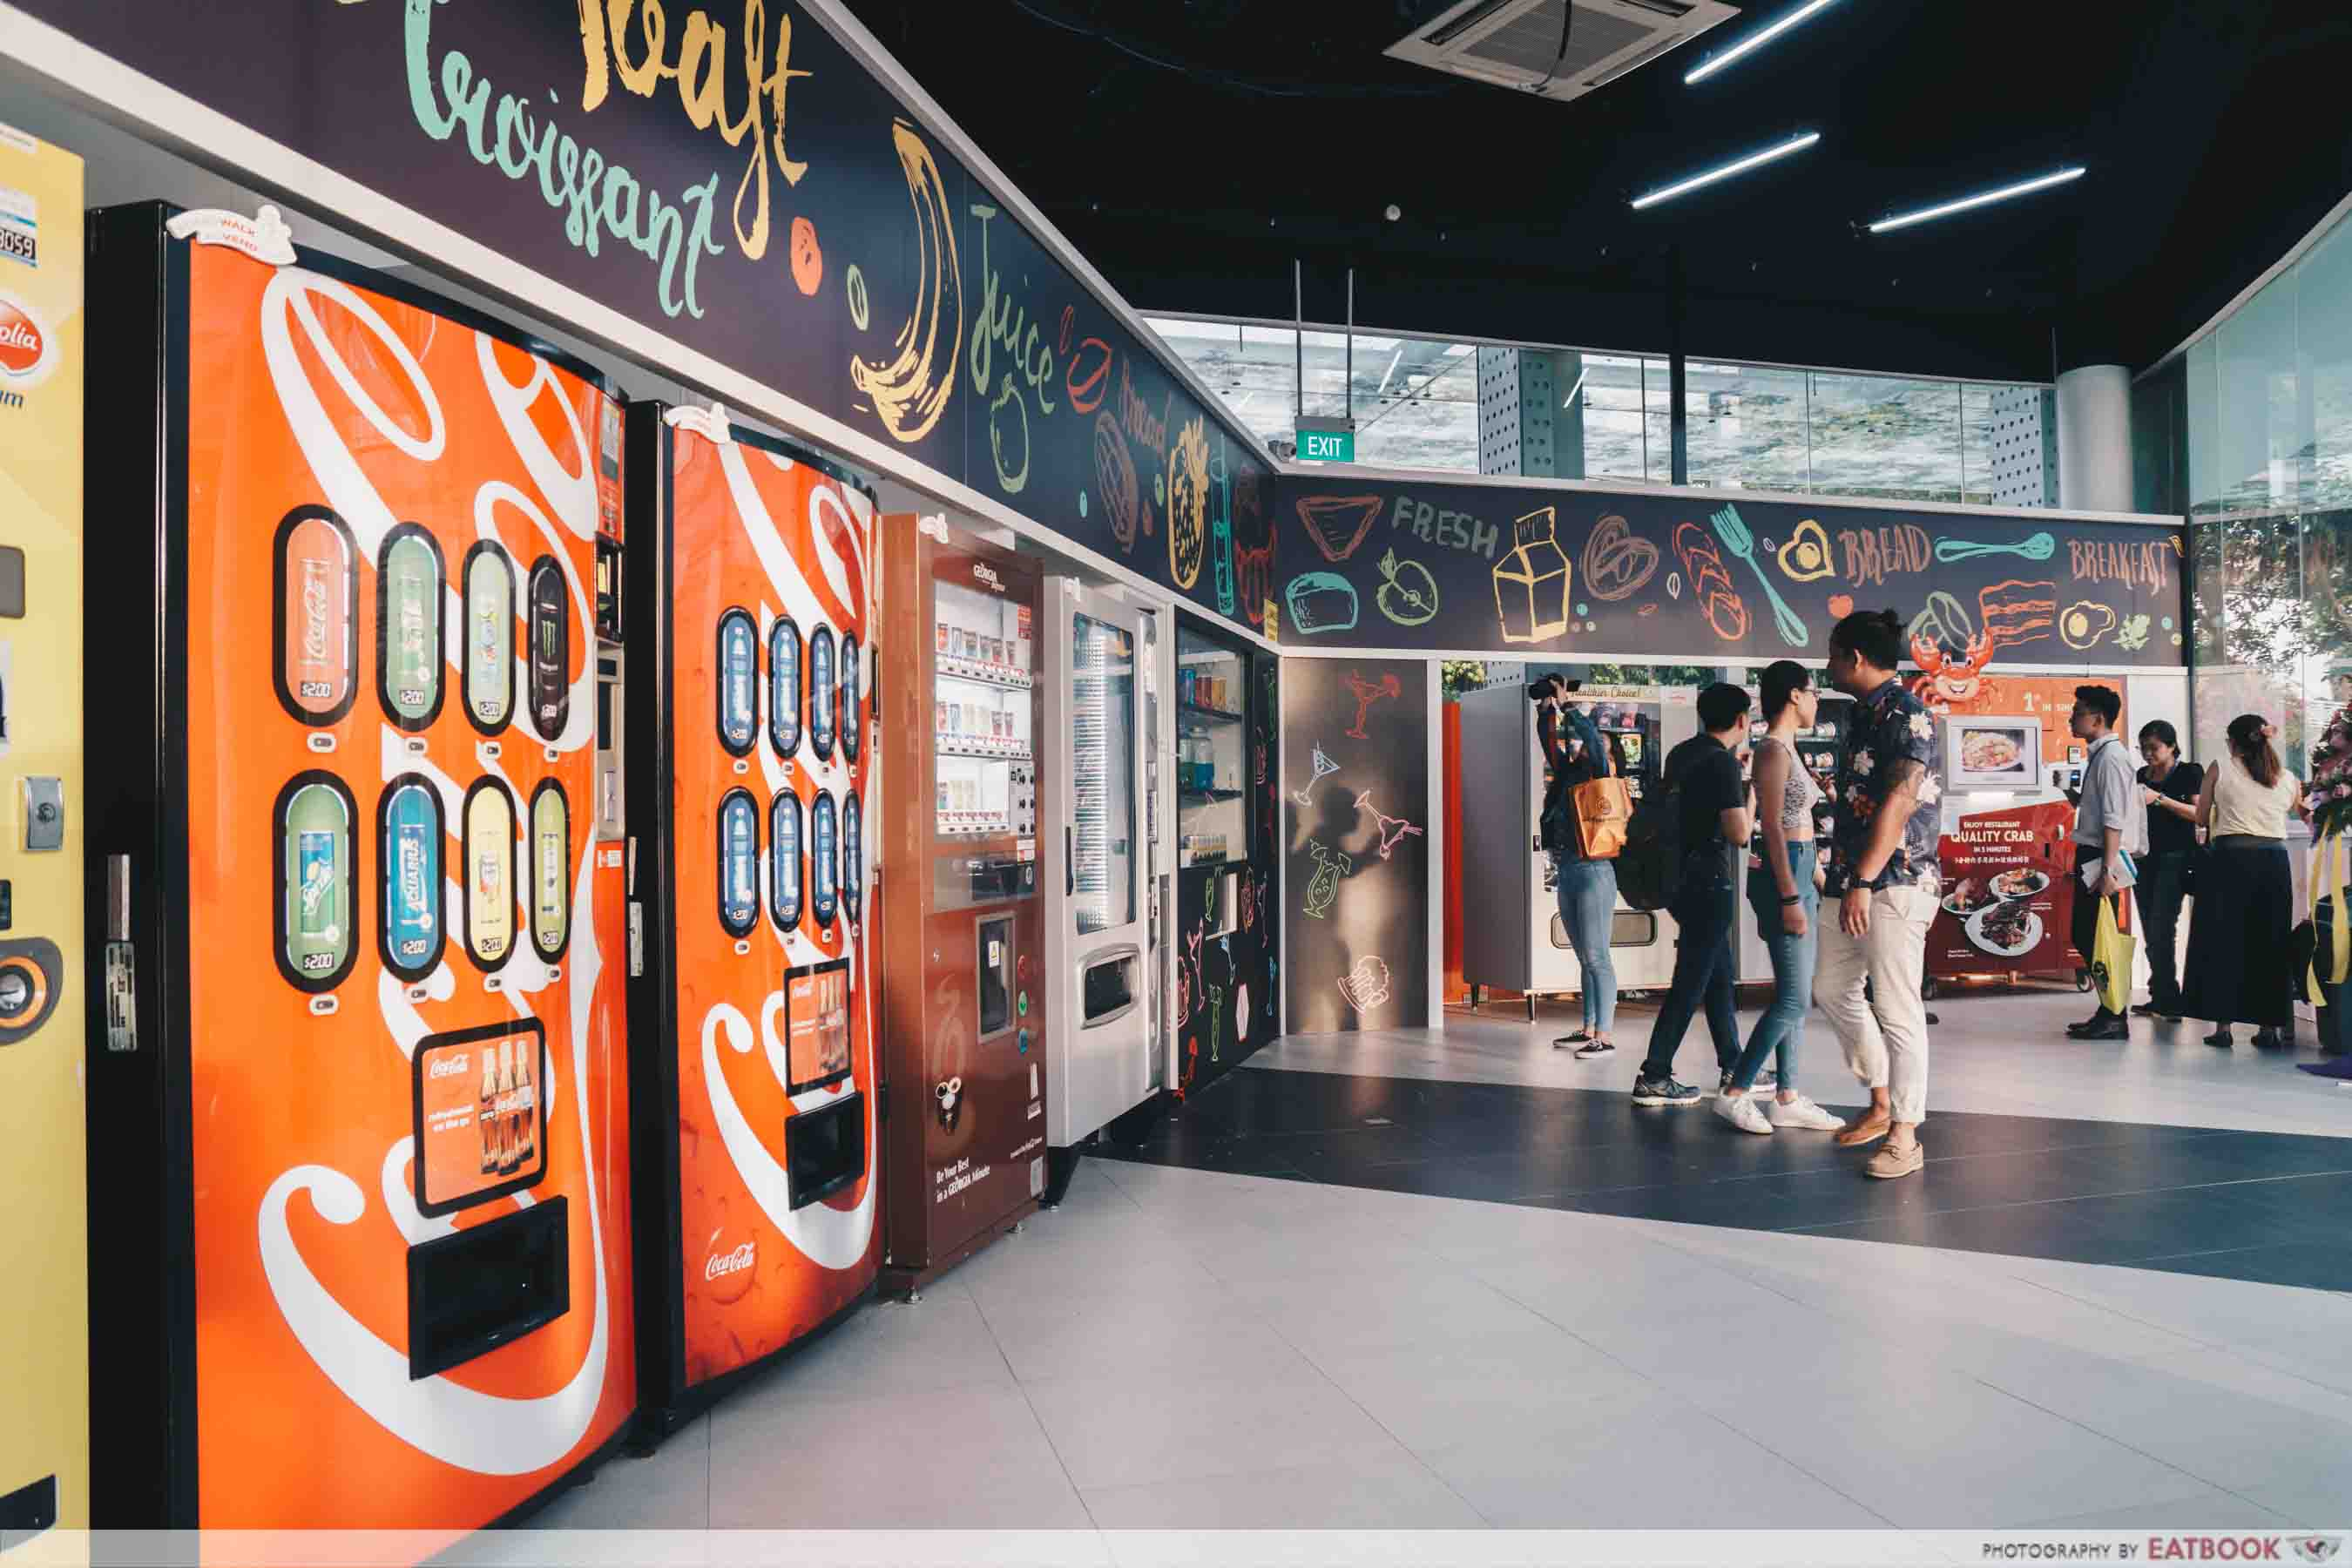 AdVENDture Sentosa Broadwalk Vending Machines - Foodie zone